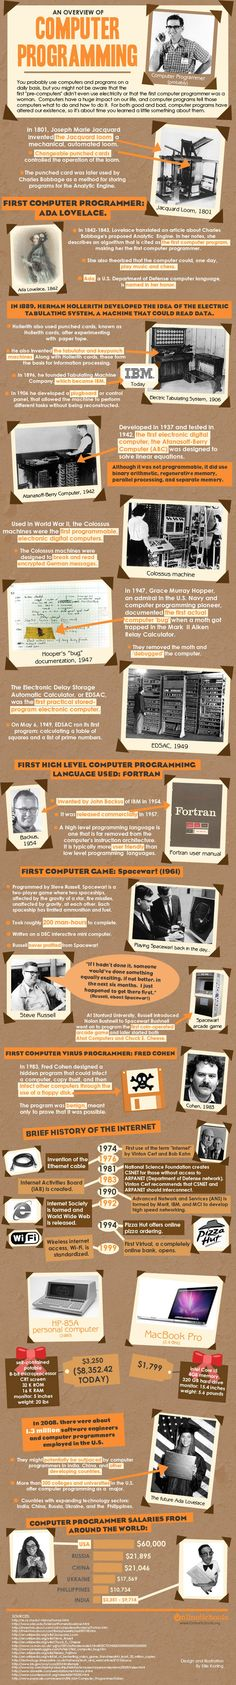 #Infographic of the day - An overview of Computer Programming